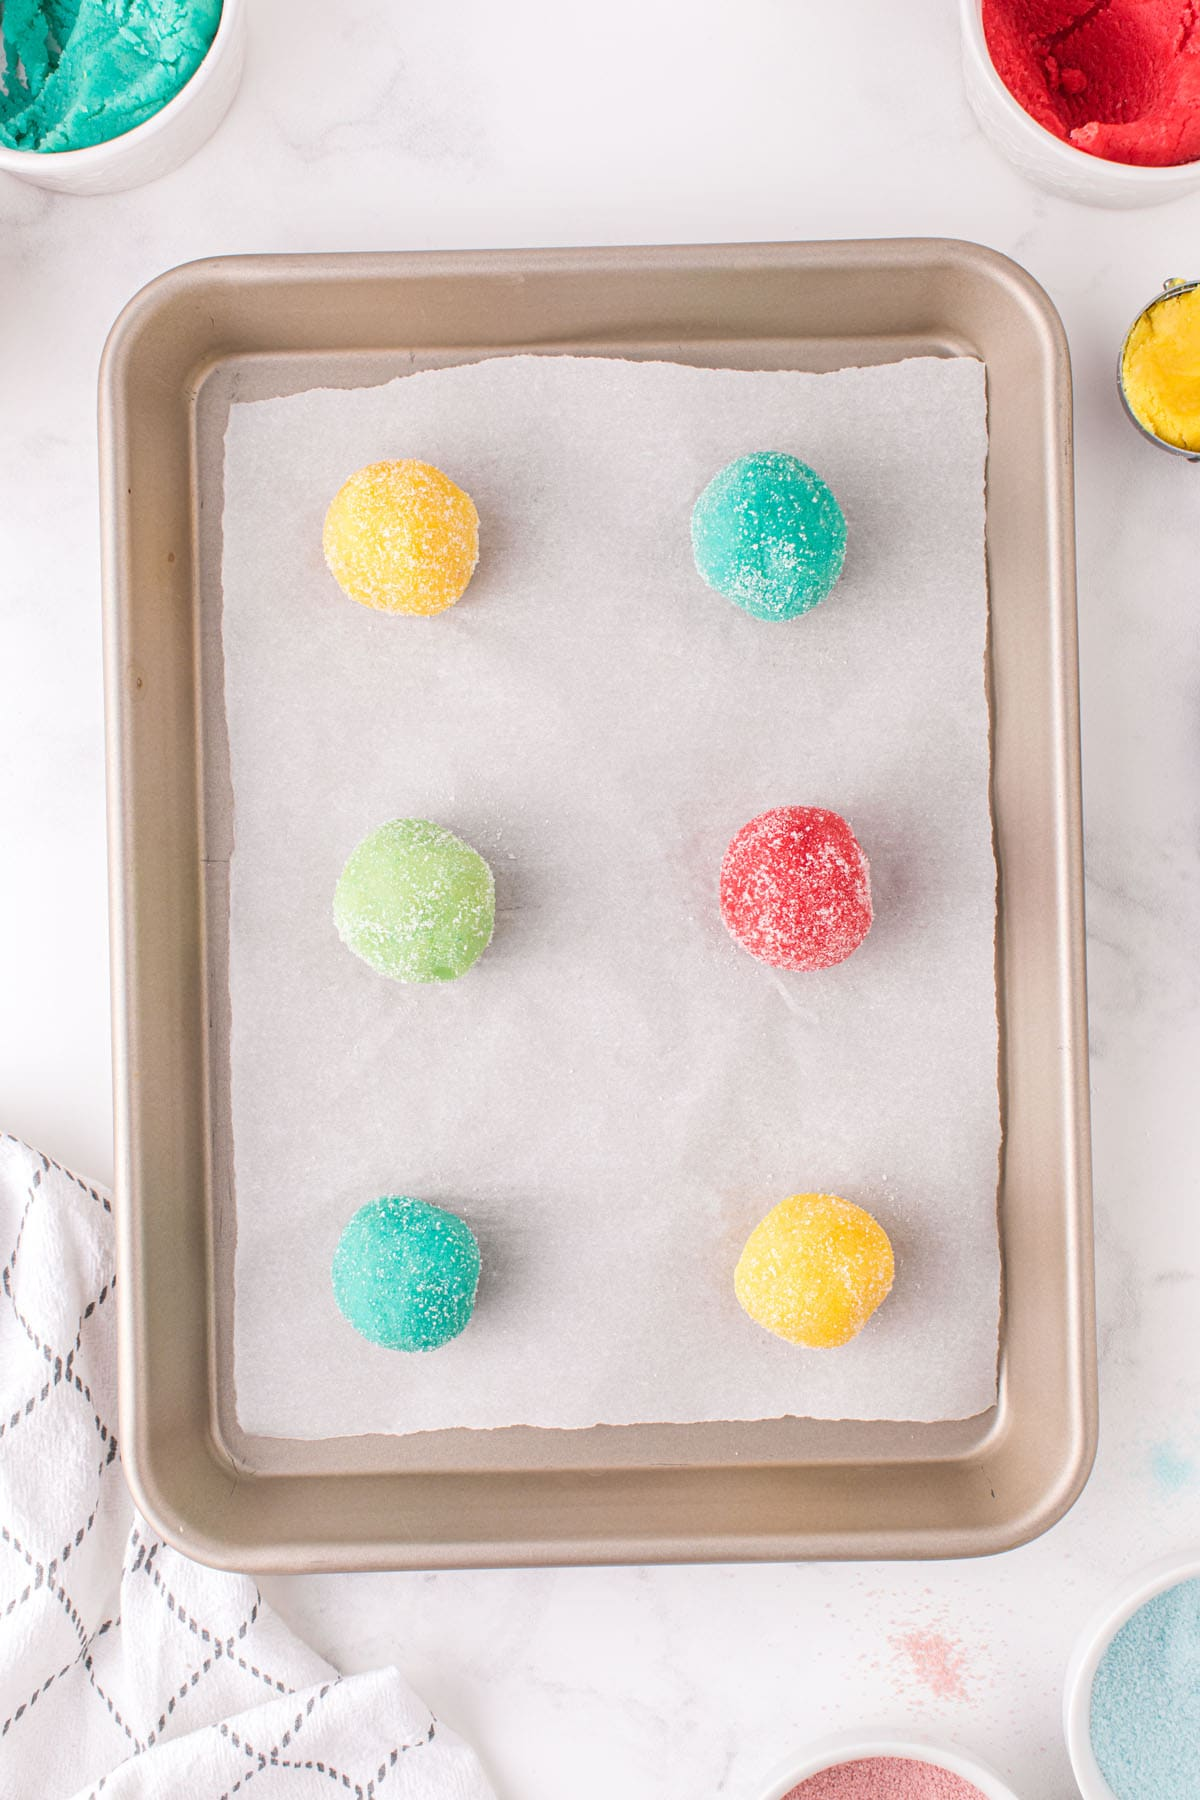 Place cookie dough on parchment lined sheet pan